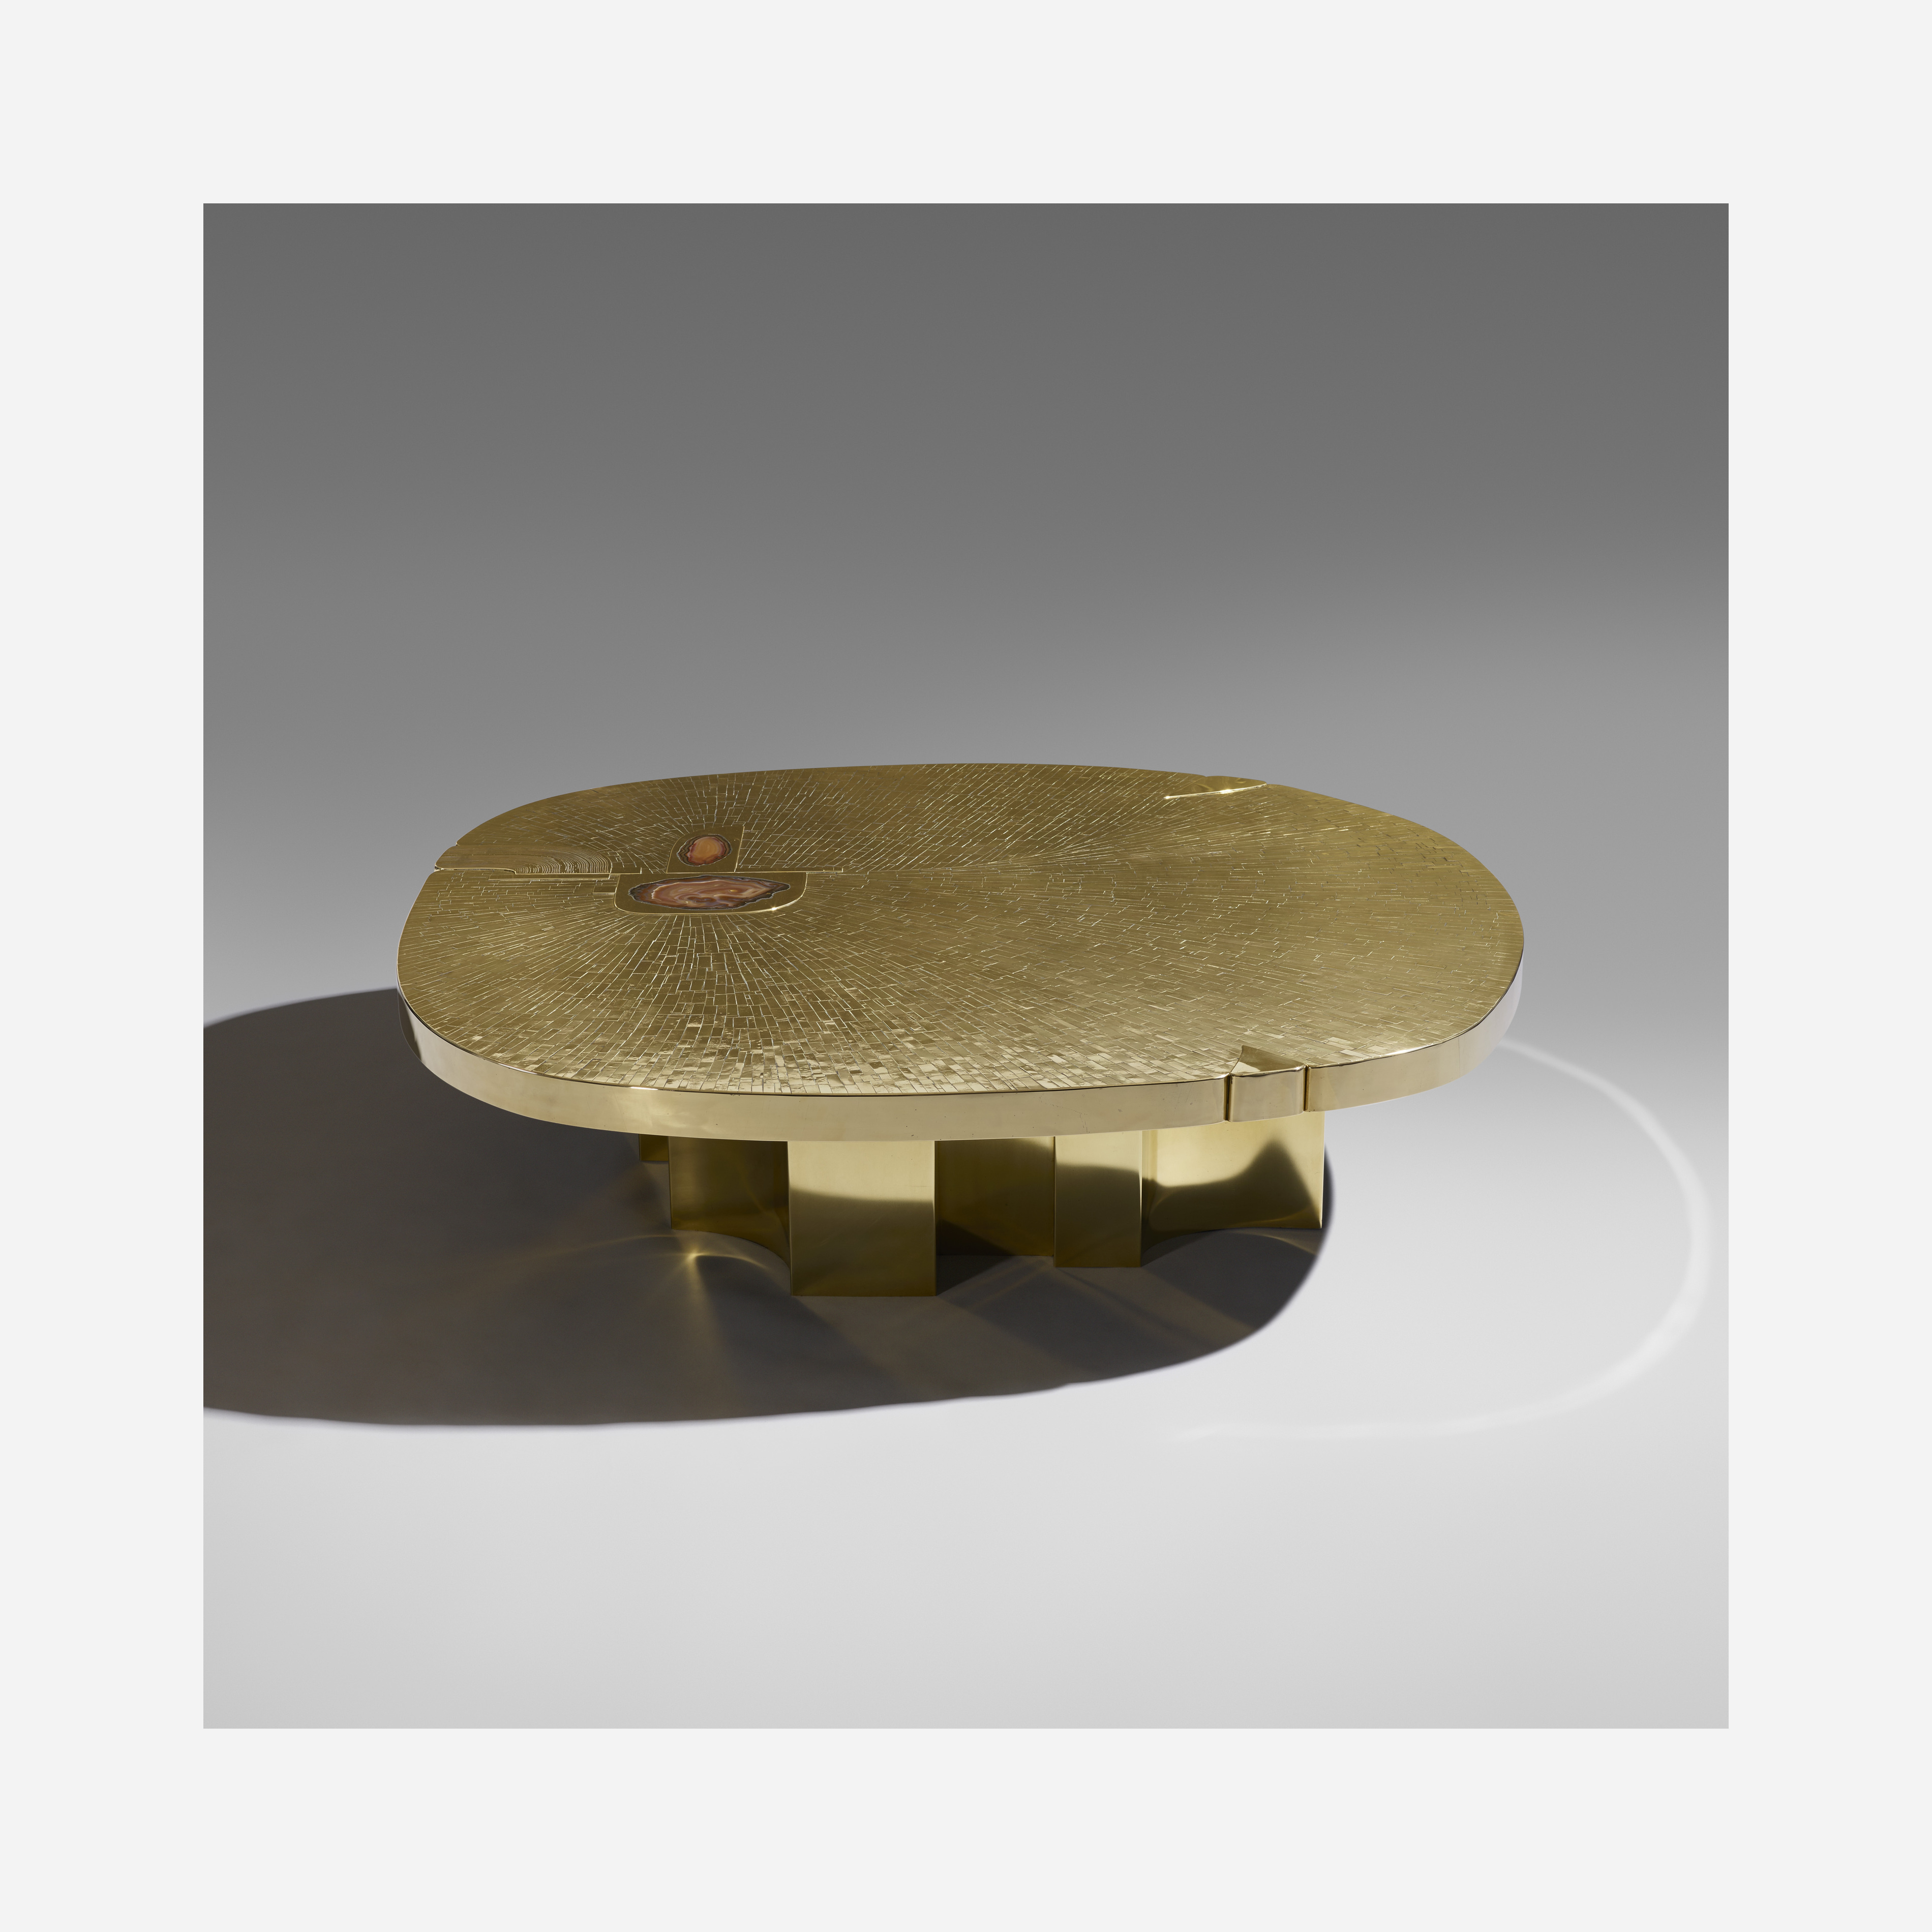 17 Jean Claude Dresse Rare and Important coffee table Design